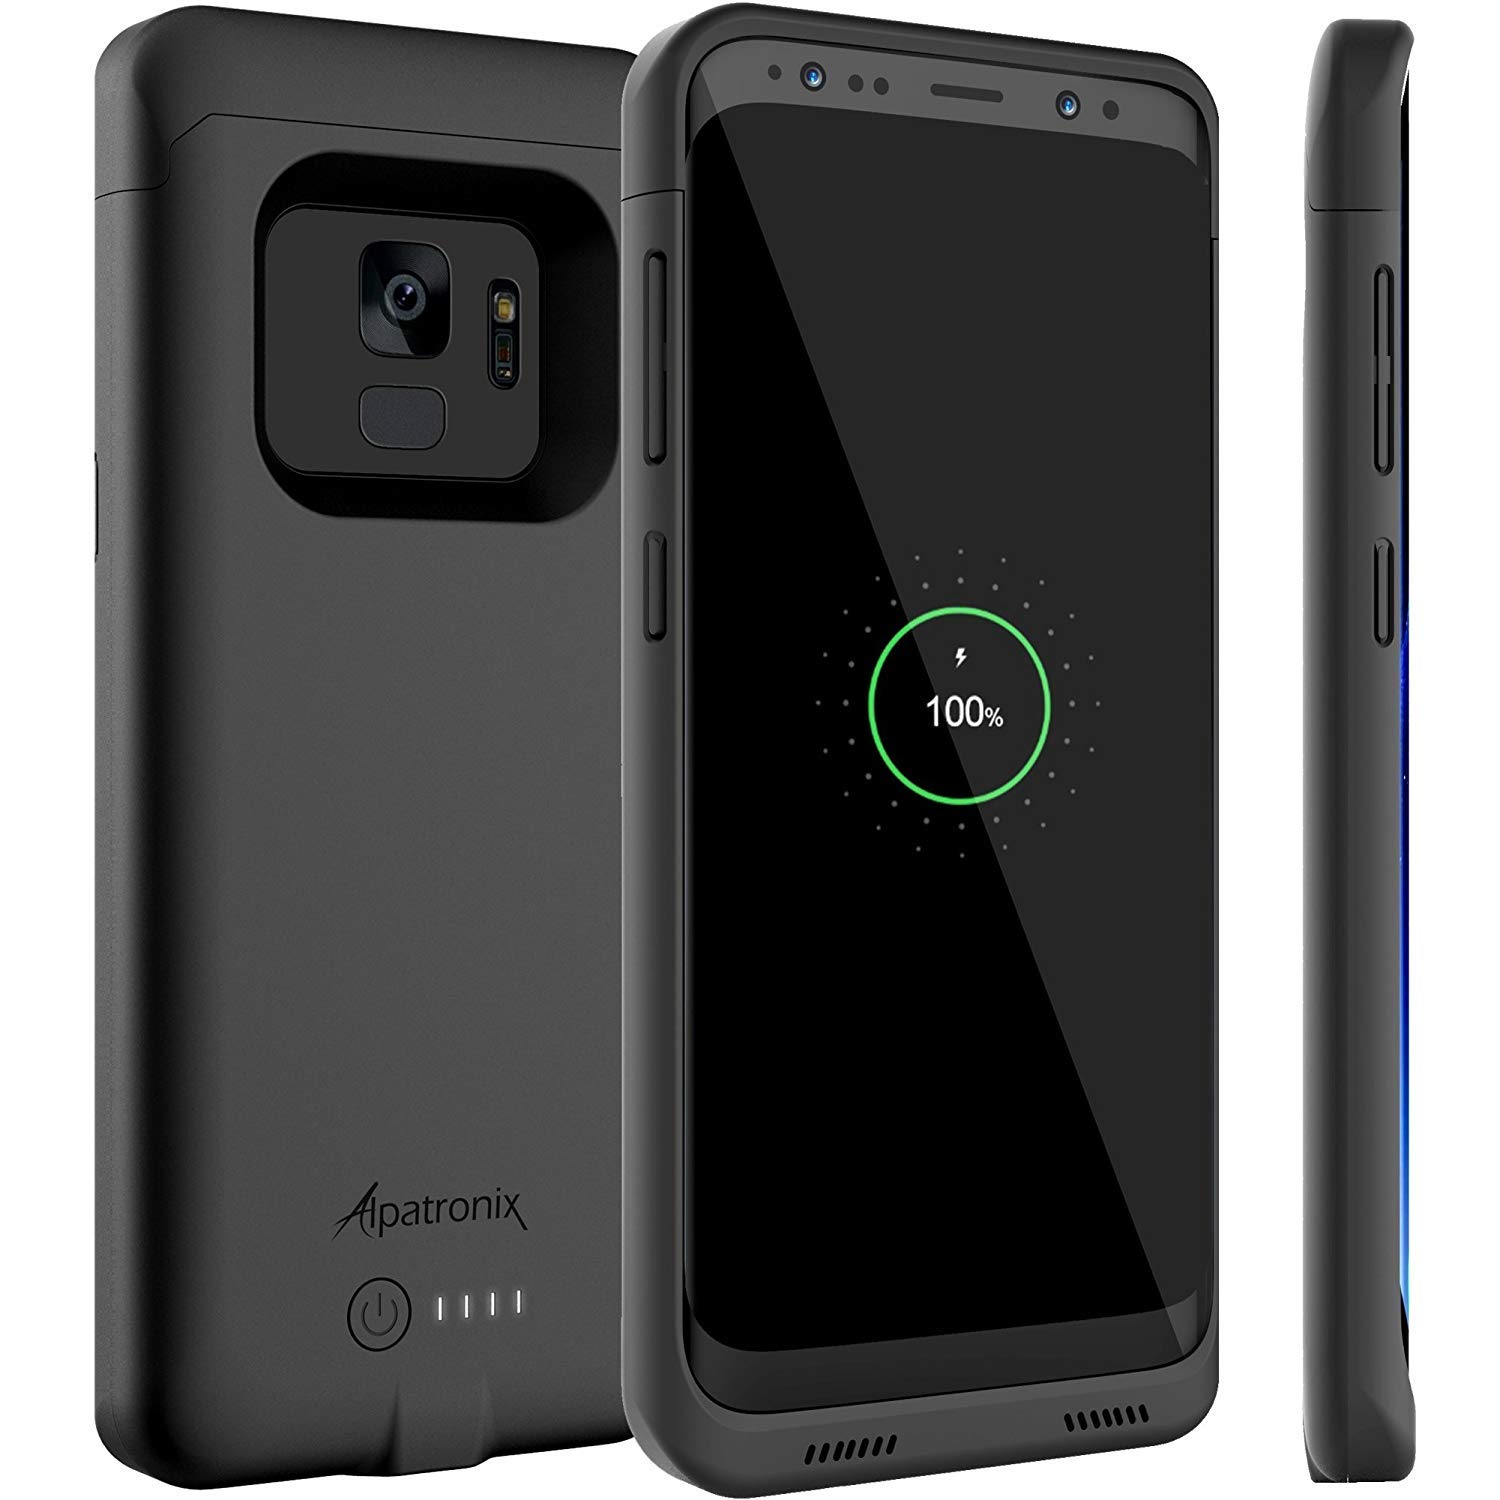 Alpatronix Galaxy S9 Battery Case, BX440 4000mAh Slim Portable Protective Extended Charger Cover with Qi Wireless Charging Compatible for Samsung Galaxy S9 (5.8-inch) (Black) [Upgraded] by Alpatronix